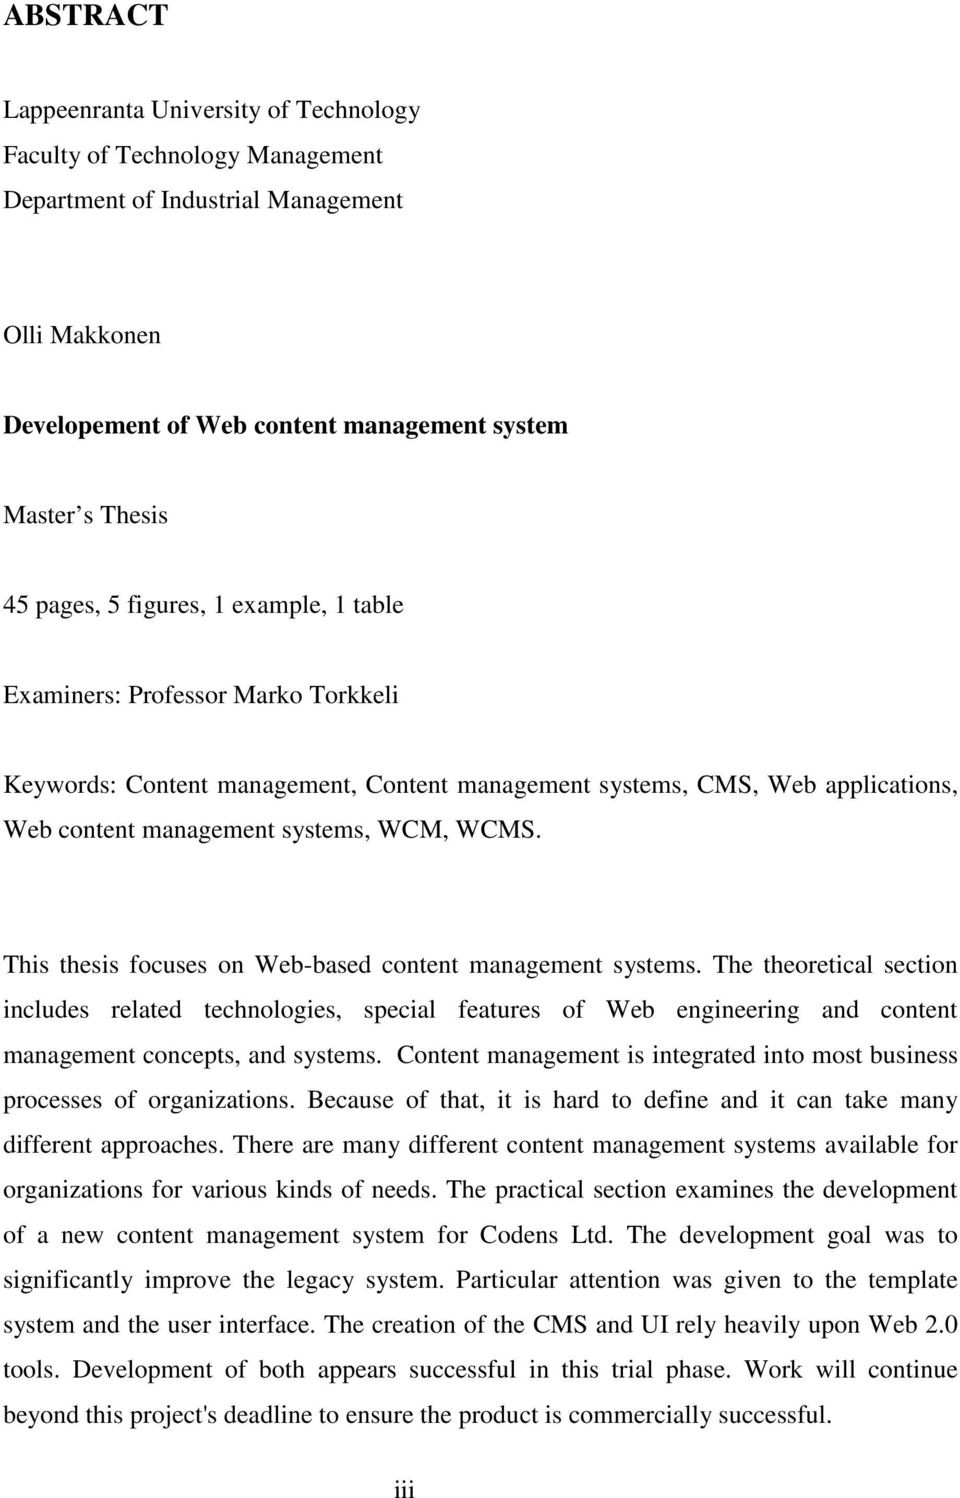 This thesis focuses on Web-based content management systems. The theoretical section includes related technologies, special features of Web engineering and content management concepts, and systems.